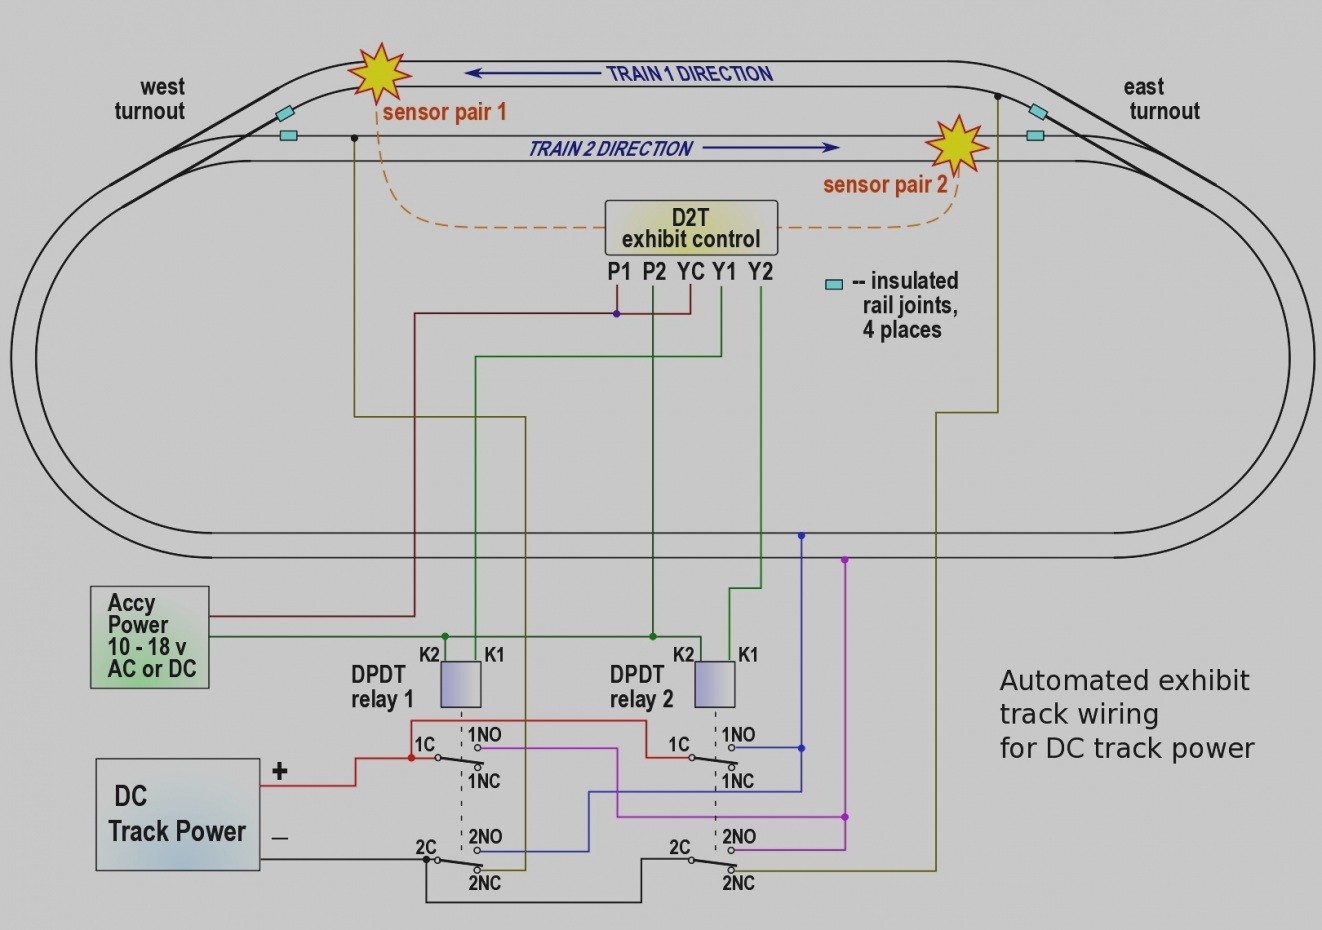 hight resolution of lionel accessories wiring diagrams wiring diagram bloglionel train wiring diagrams wiring diagram view lionel accessories wiring